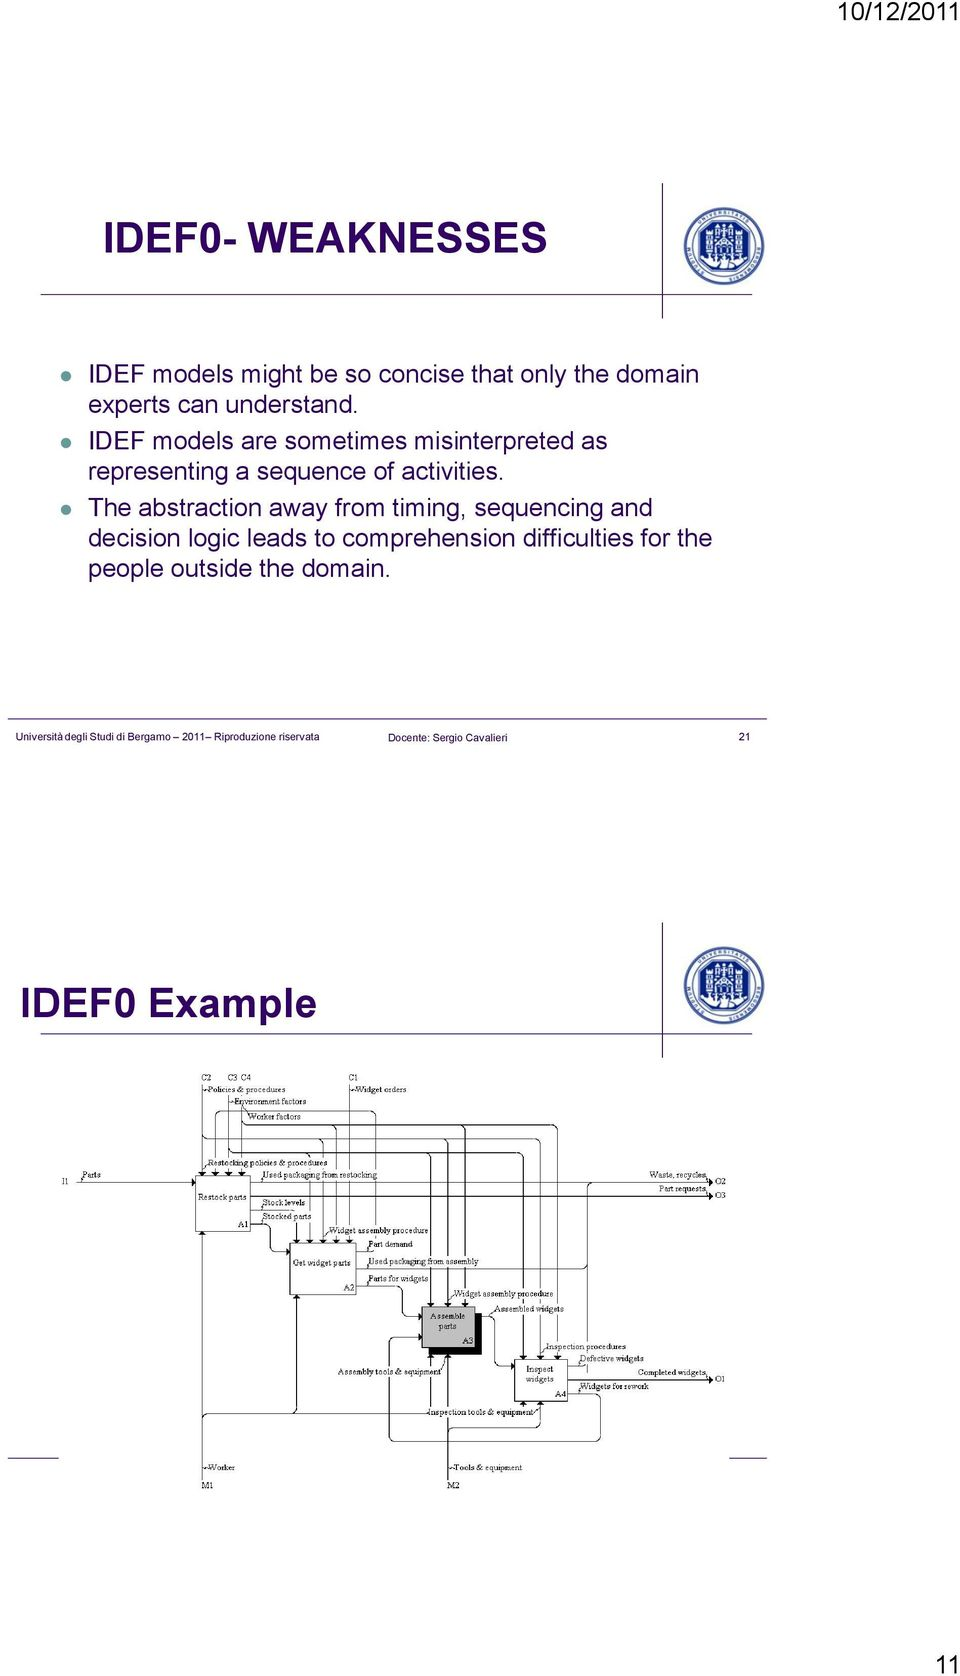 IDEF models are sometimes misinterpreted as representing a sequence of activities.